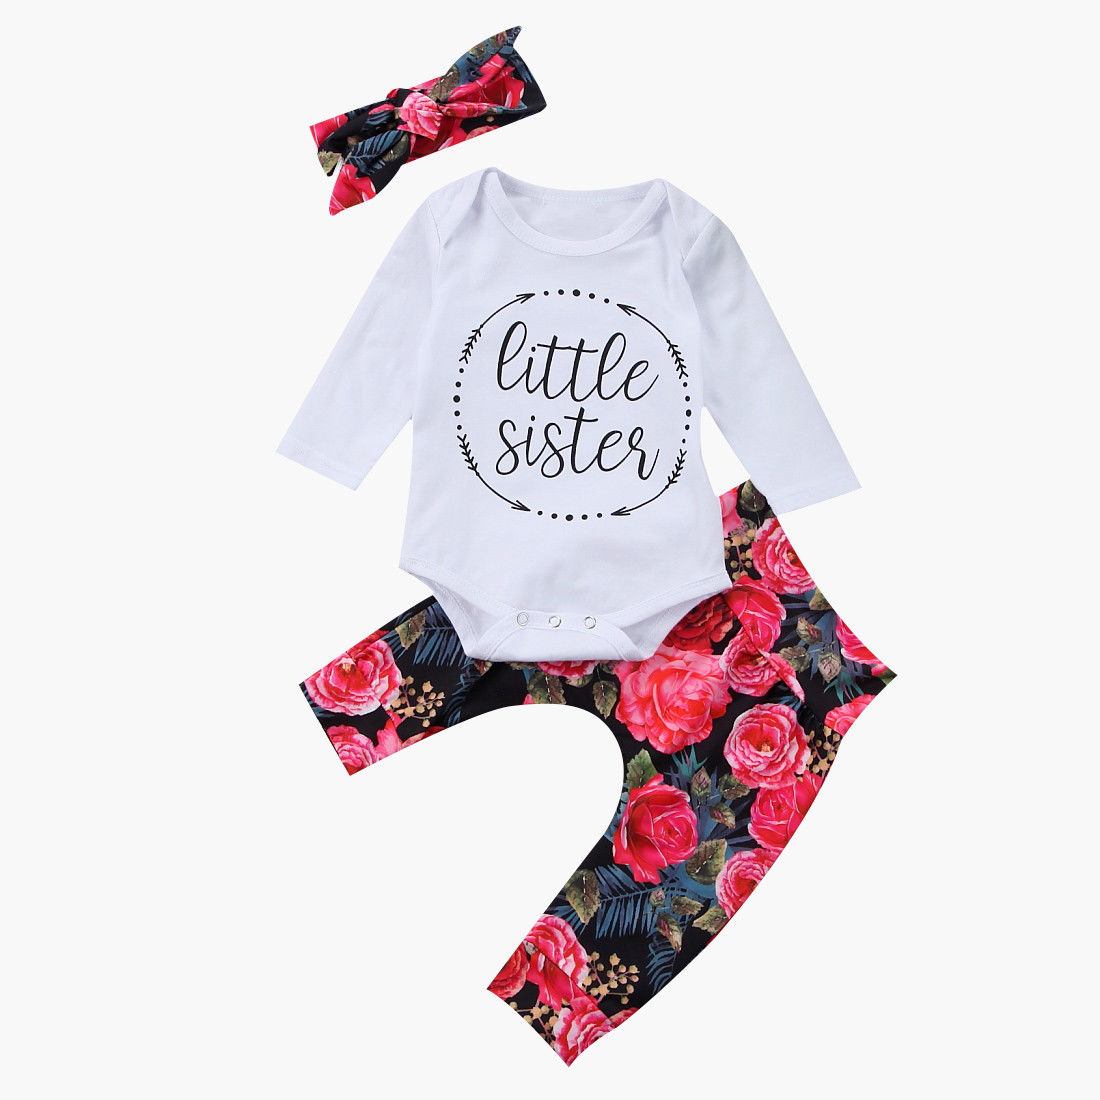 3CPS Newborn Toddler Baby Girl Clothes Romper Jumpsuit Bodysuit+Pants Outfit Set